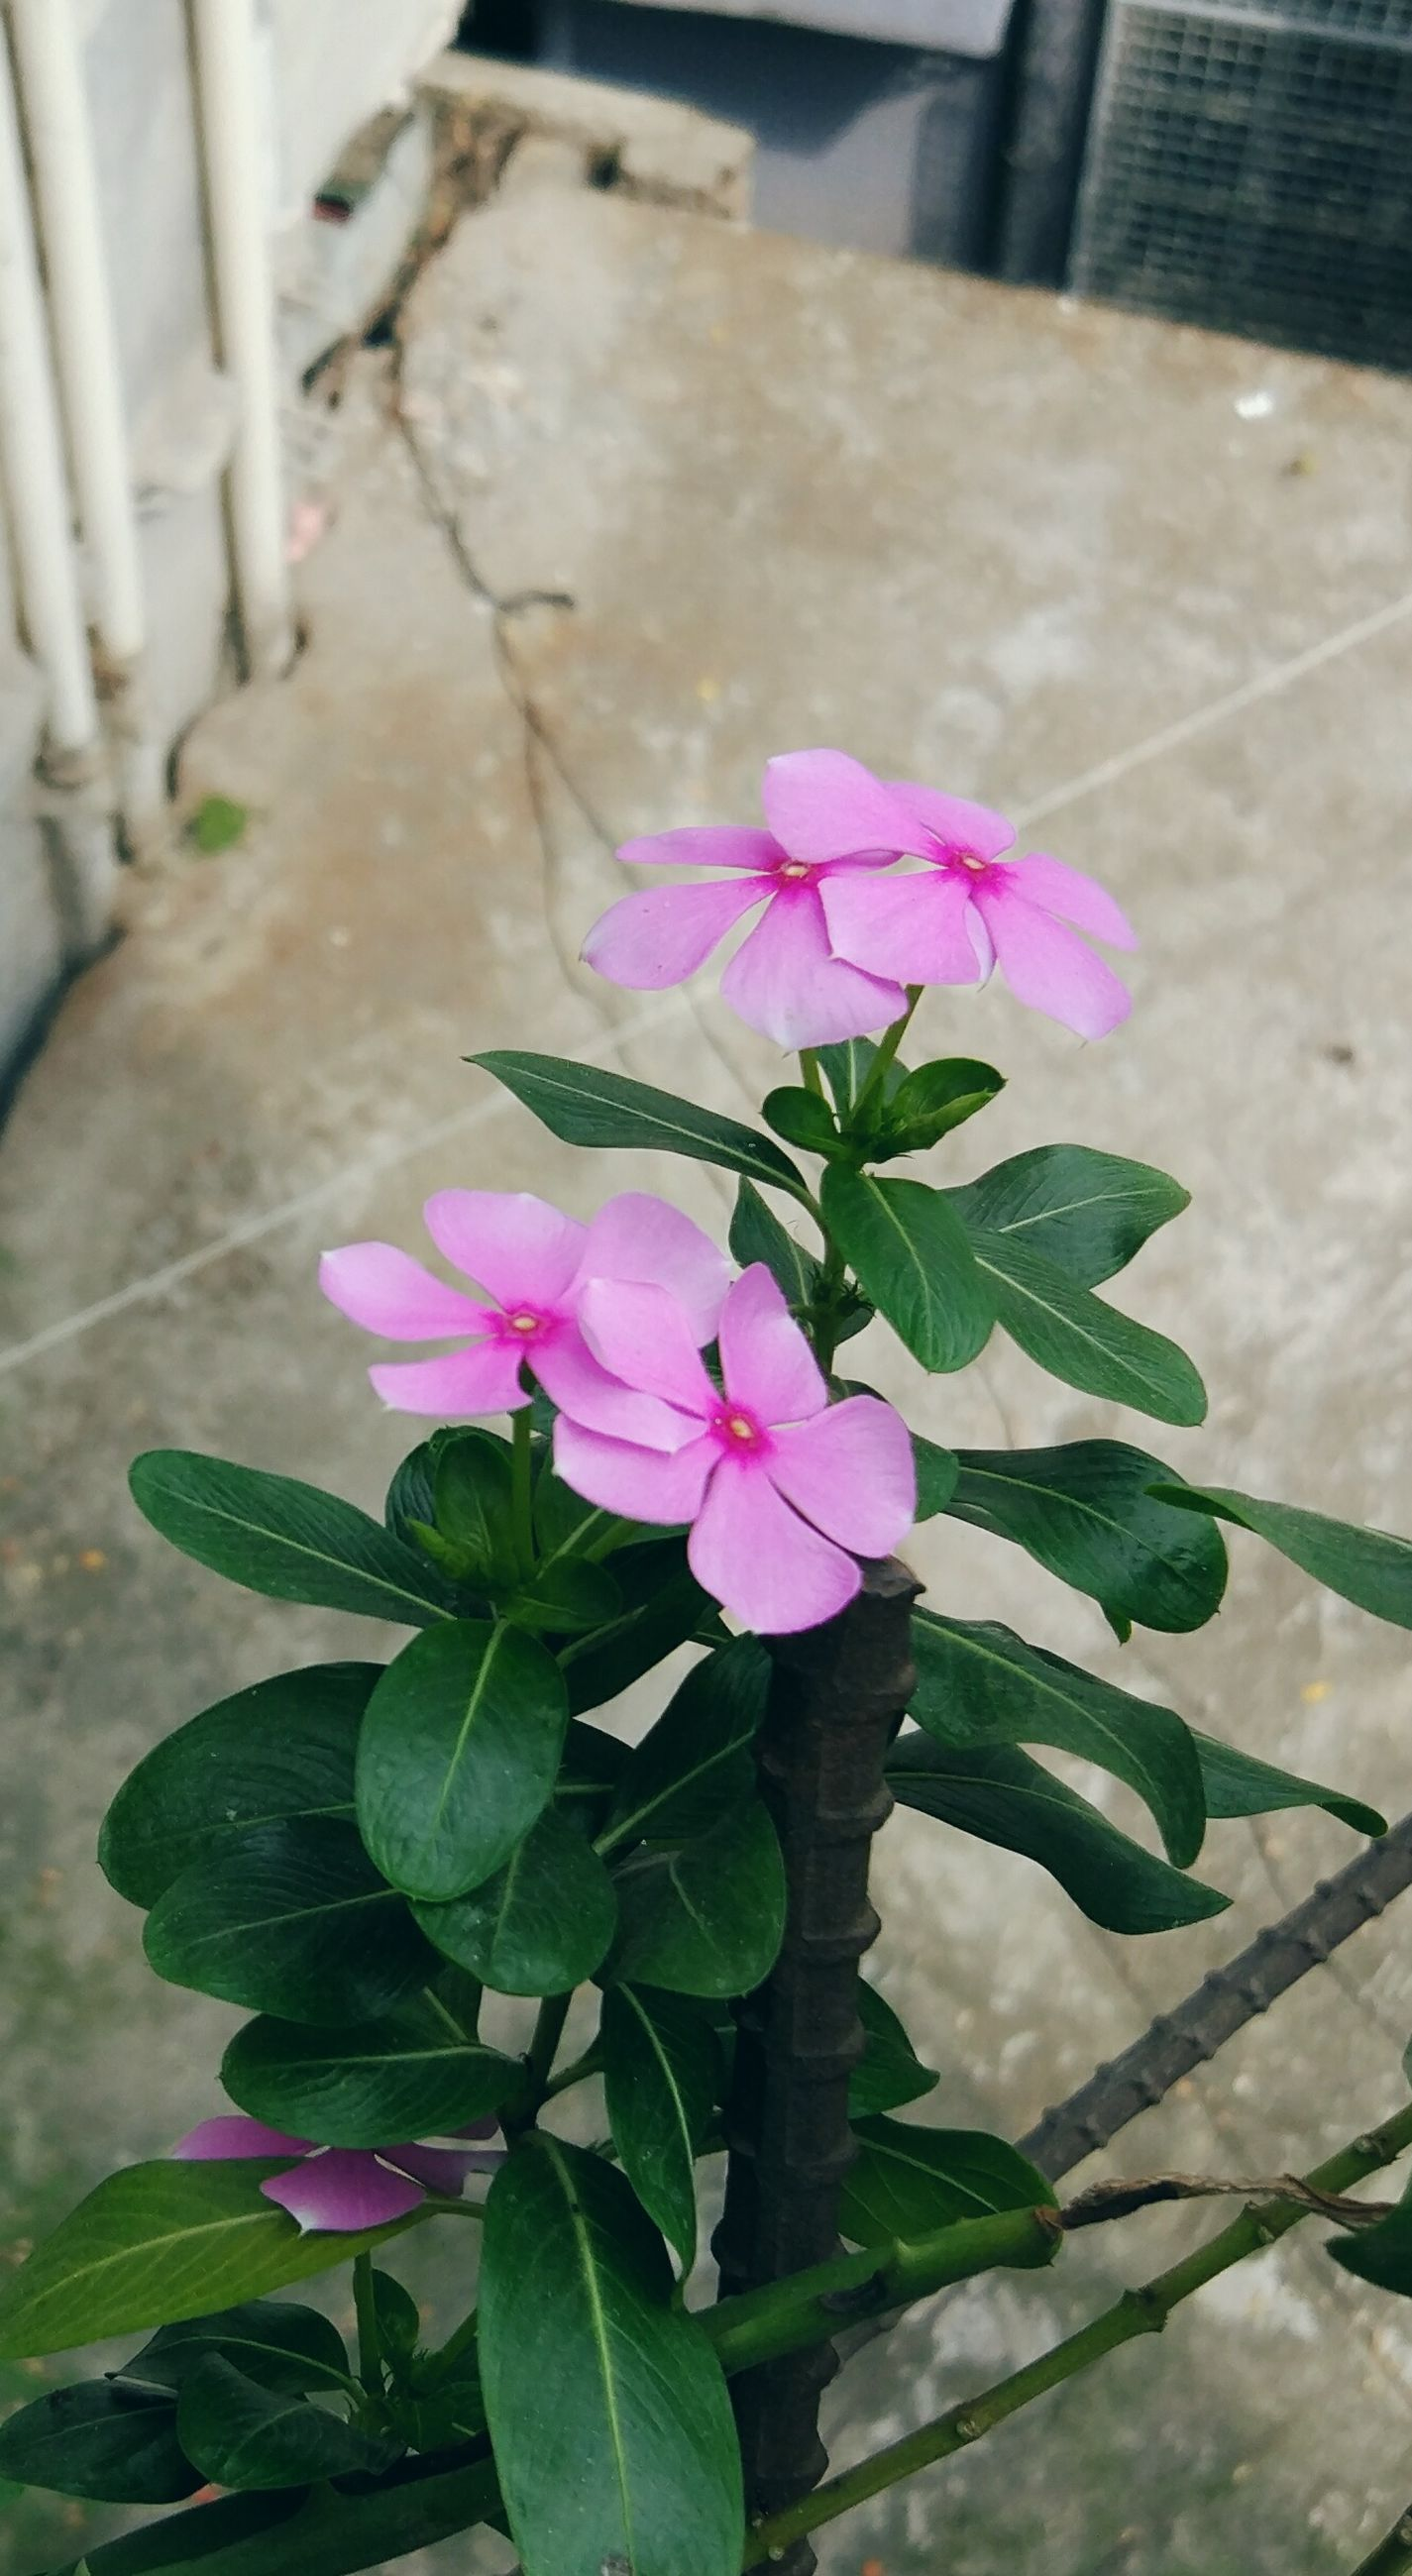 flower, fragility, freshness, nature, plant, leaf, petal, growth, beauty in nature, pink color, flower head, blooming, outdoors, no people, day, periwinkle, close-up